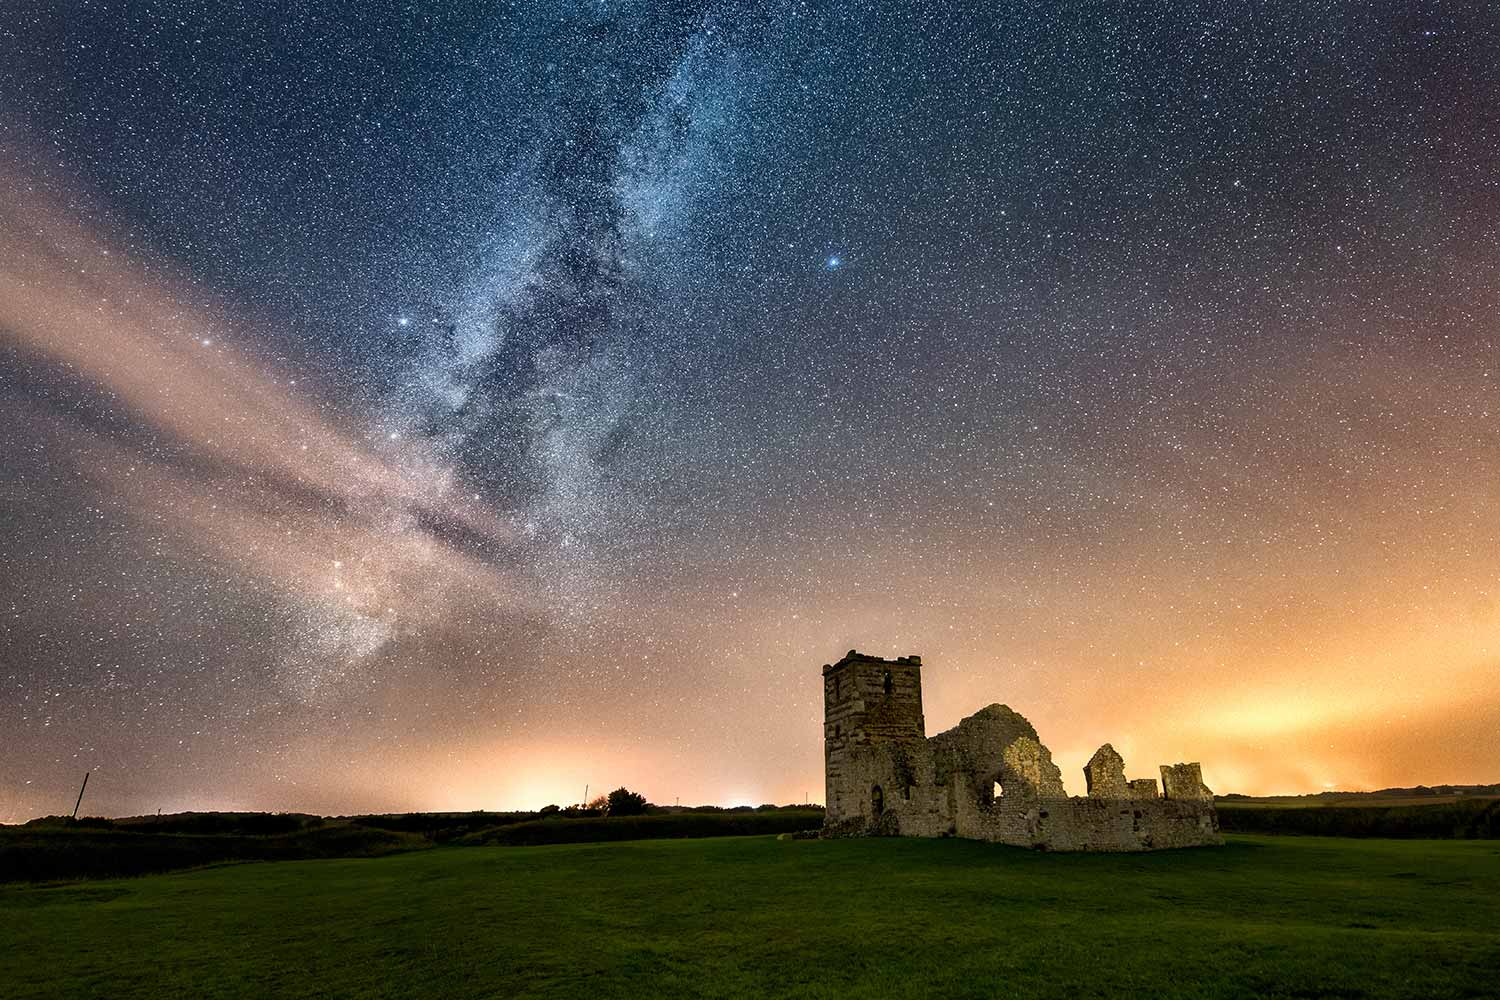 Starlit Knowlton Church